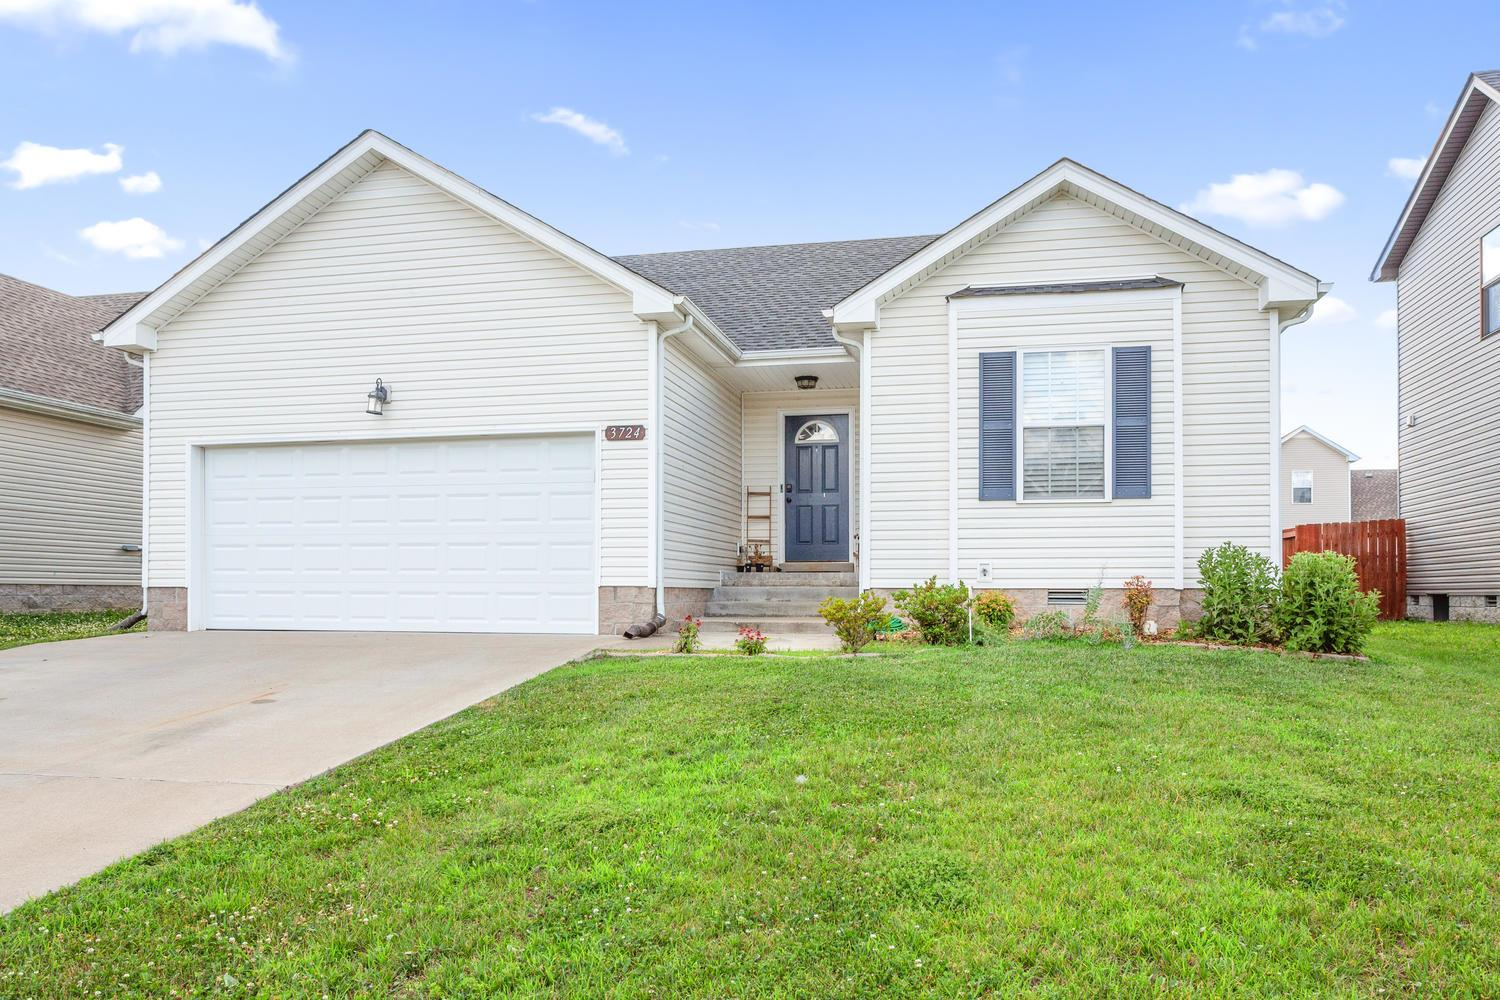 3724 Gray Fox Dr, Fort Campbell in Montgomery County County, TN 37040 Home for Sale